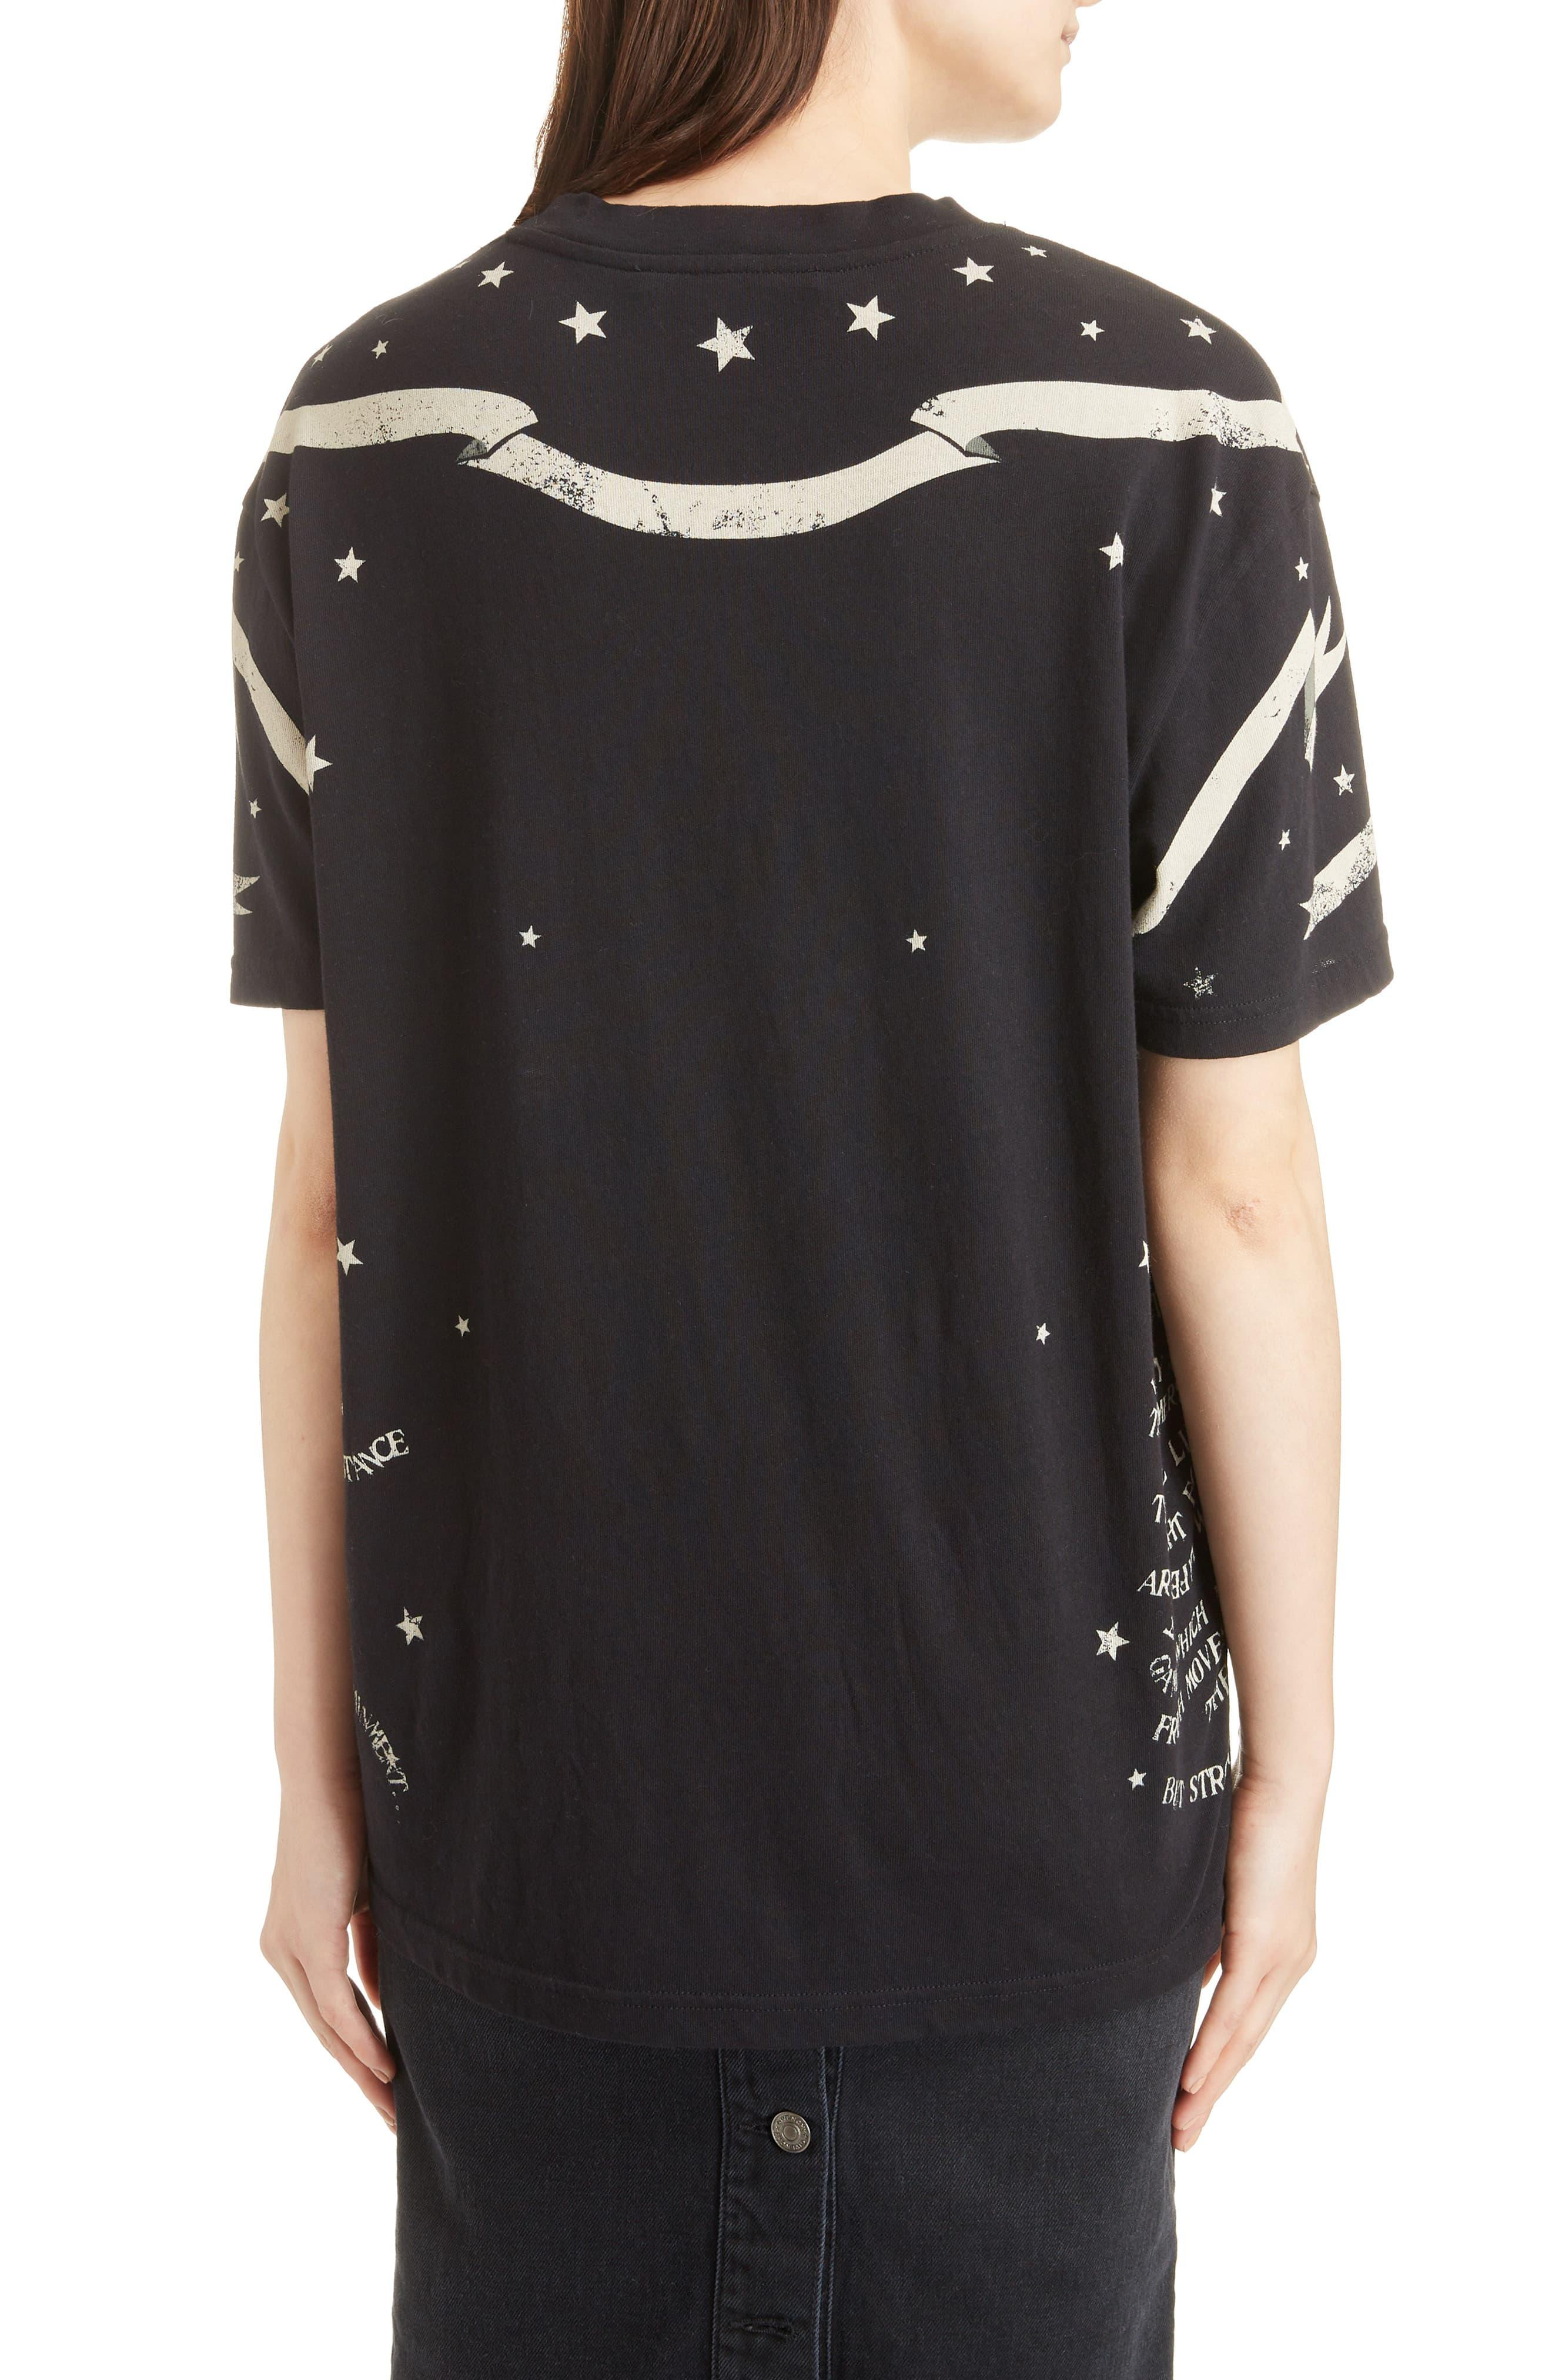 876d8b302 Givenchy Gemini Graphic Tee in Black - Lyst